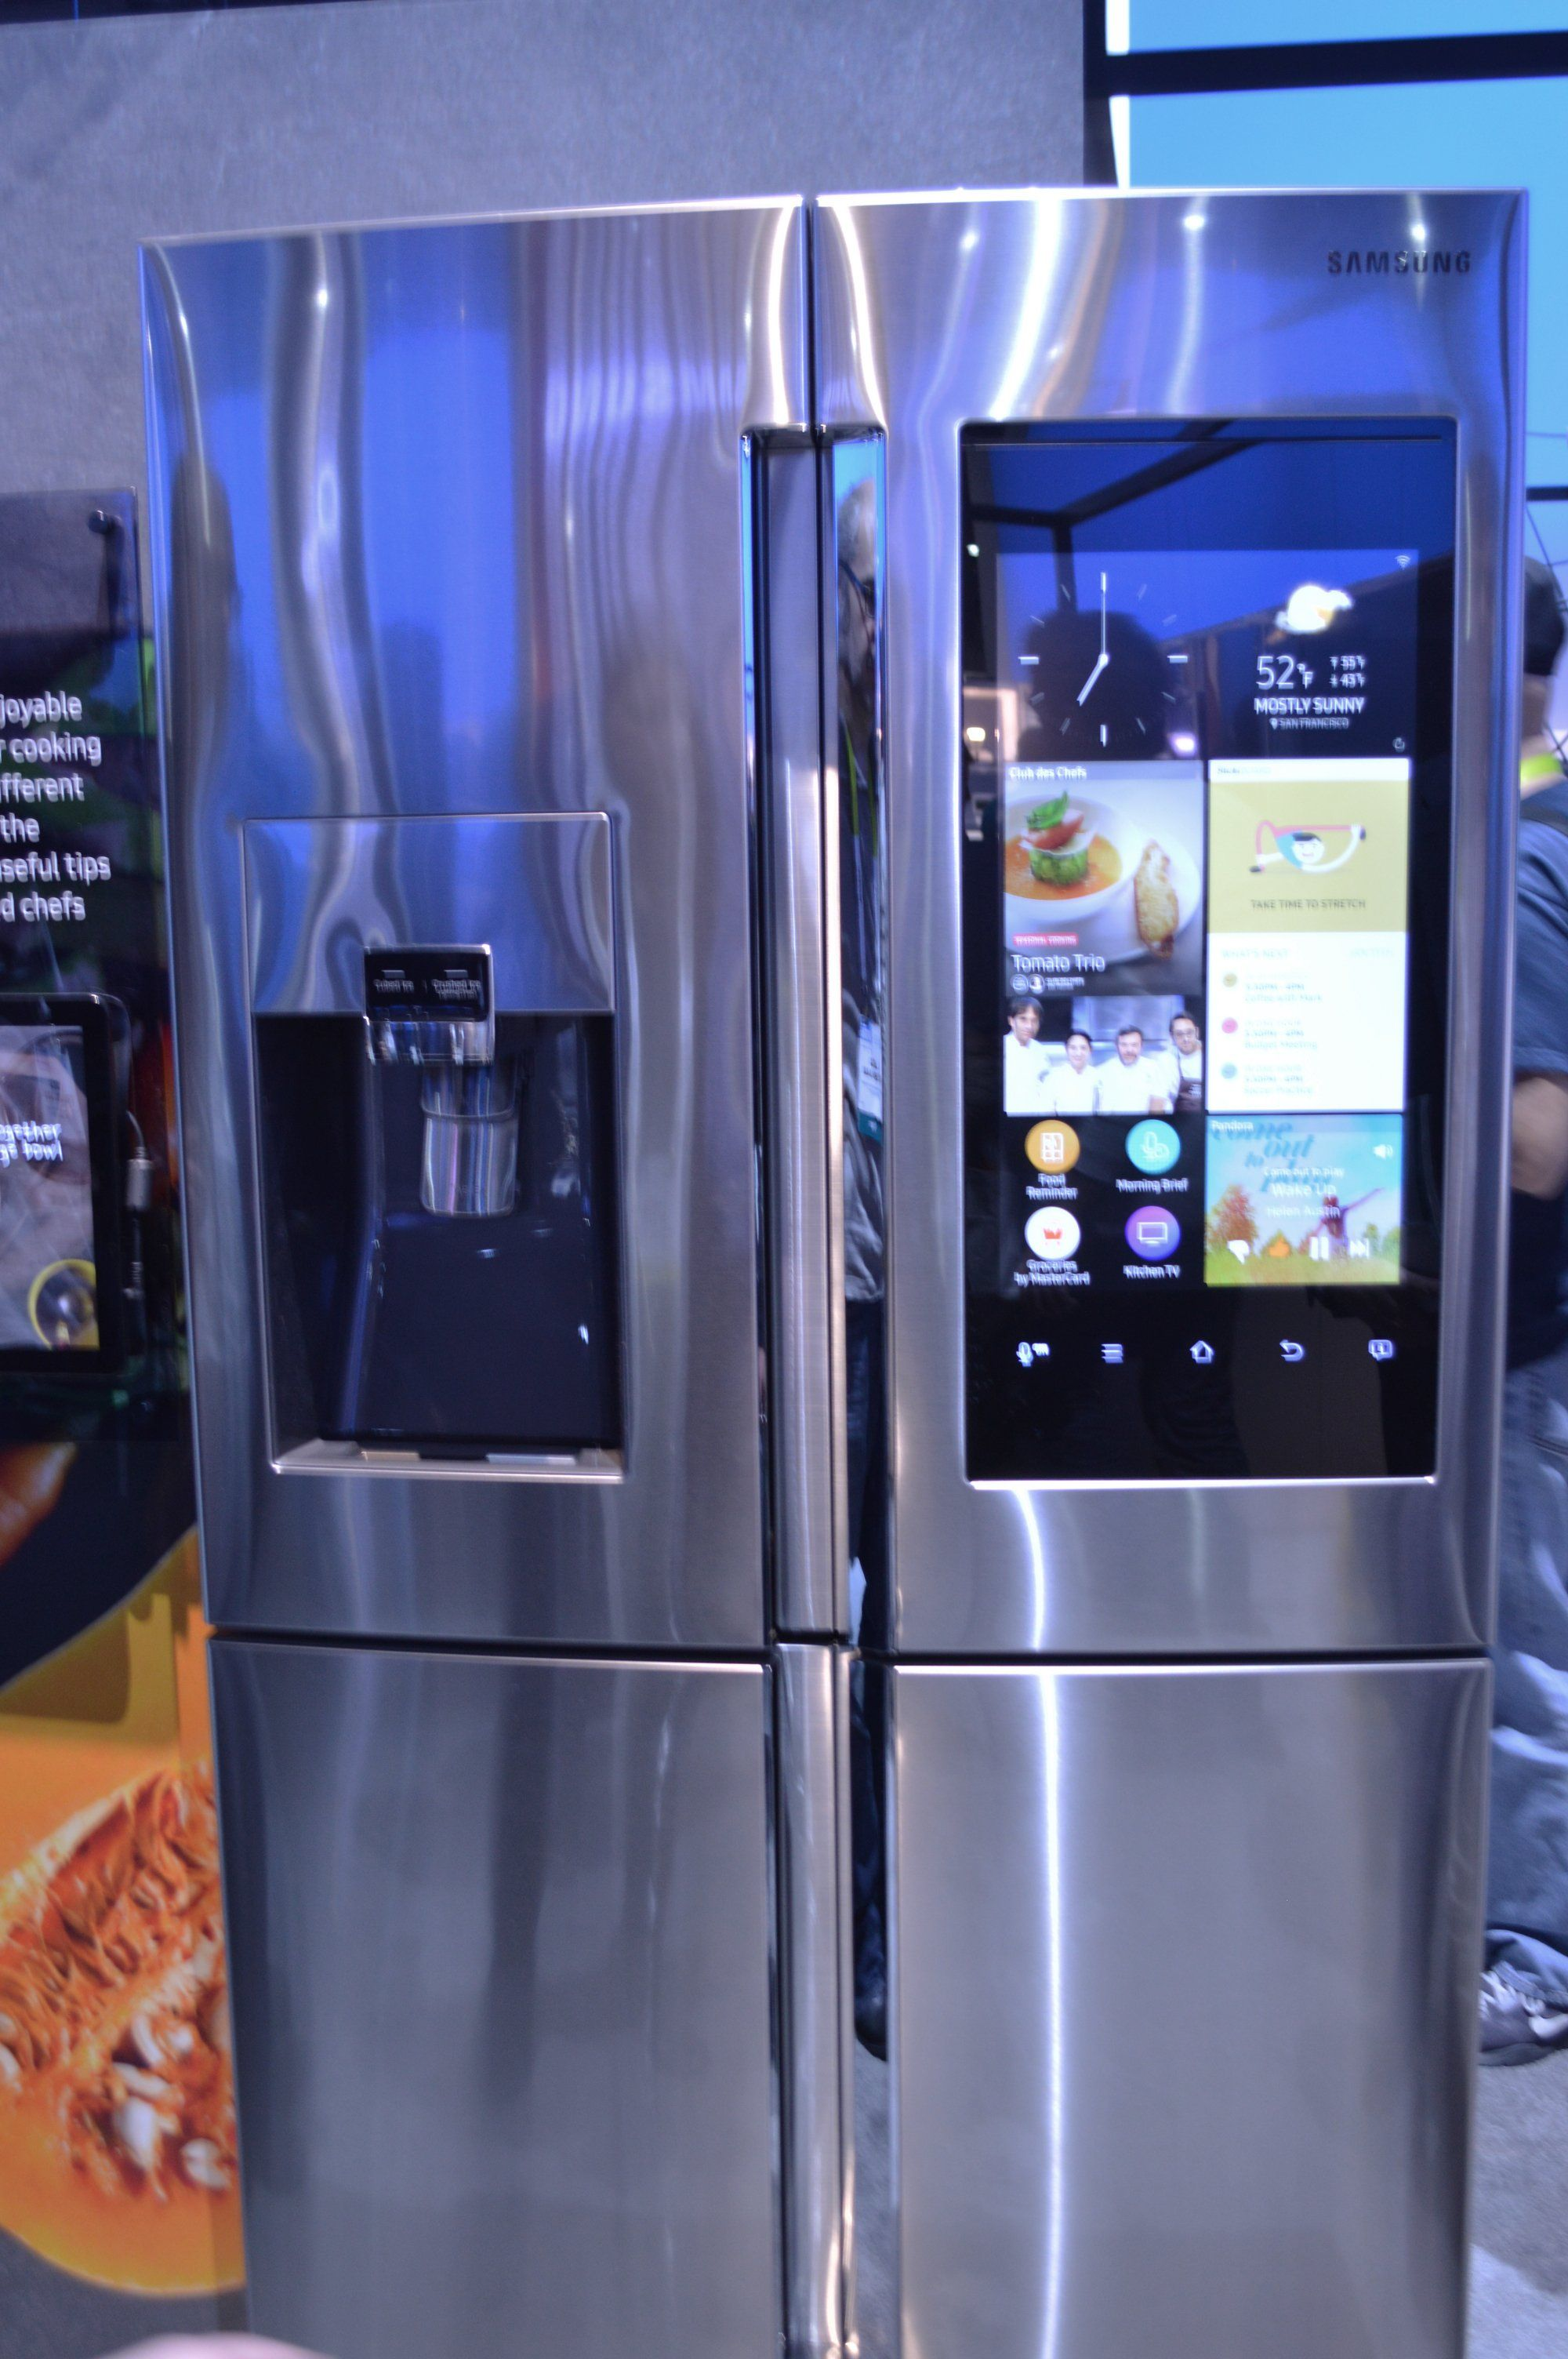 Future refrigerators will create cold with magnets 41